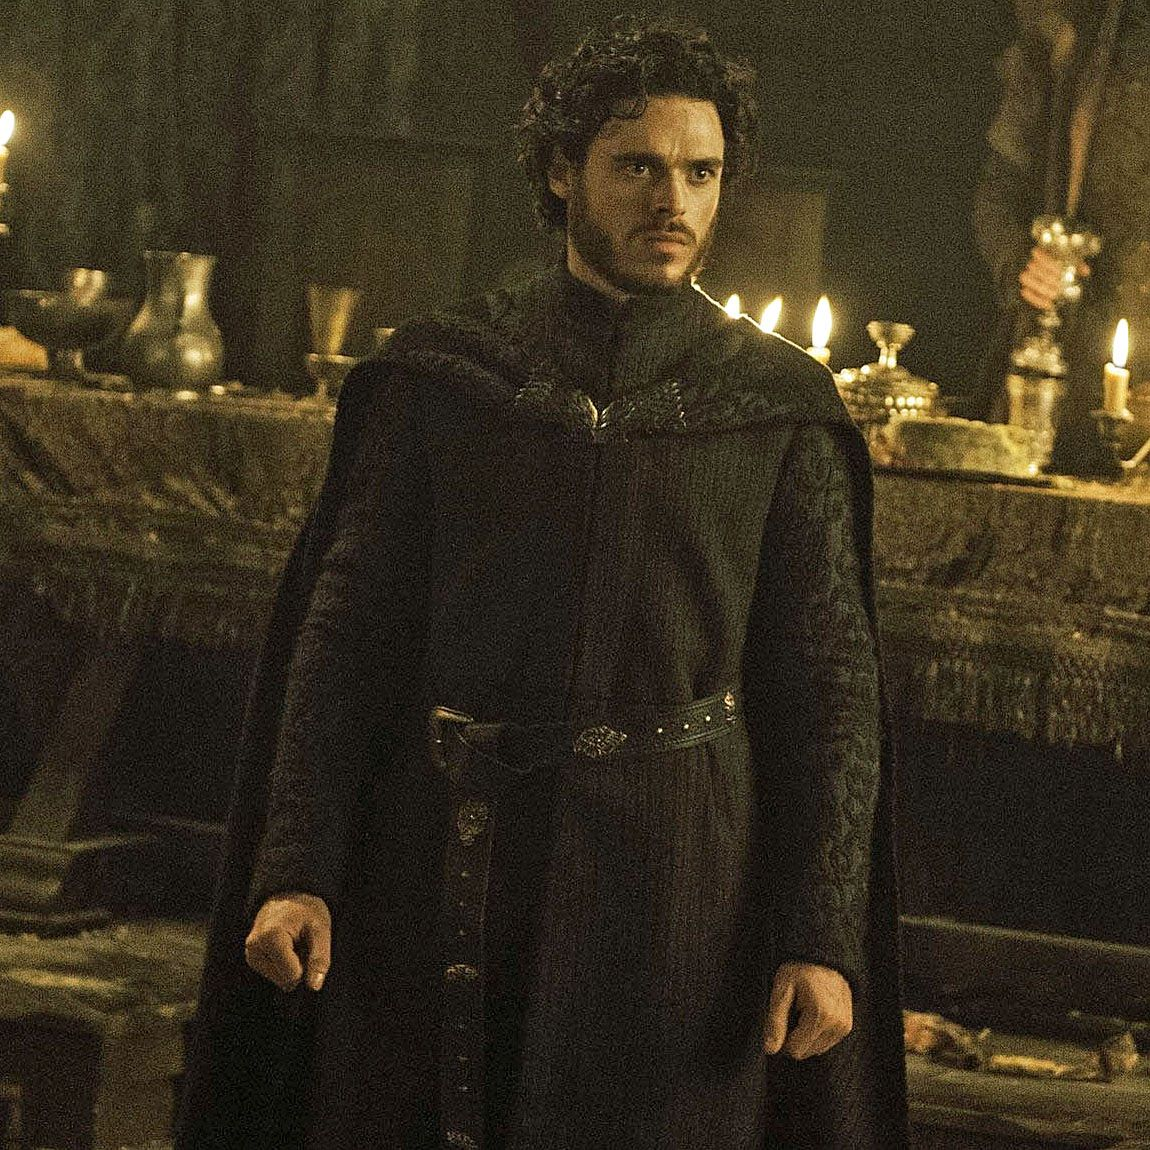 new stills from the Red Wedding   Robb stark, King in the ...